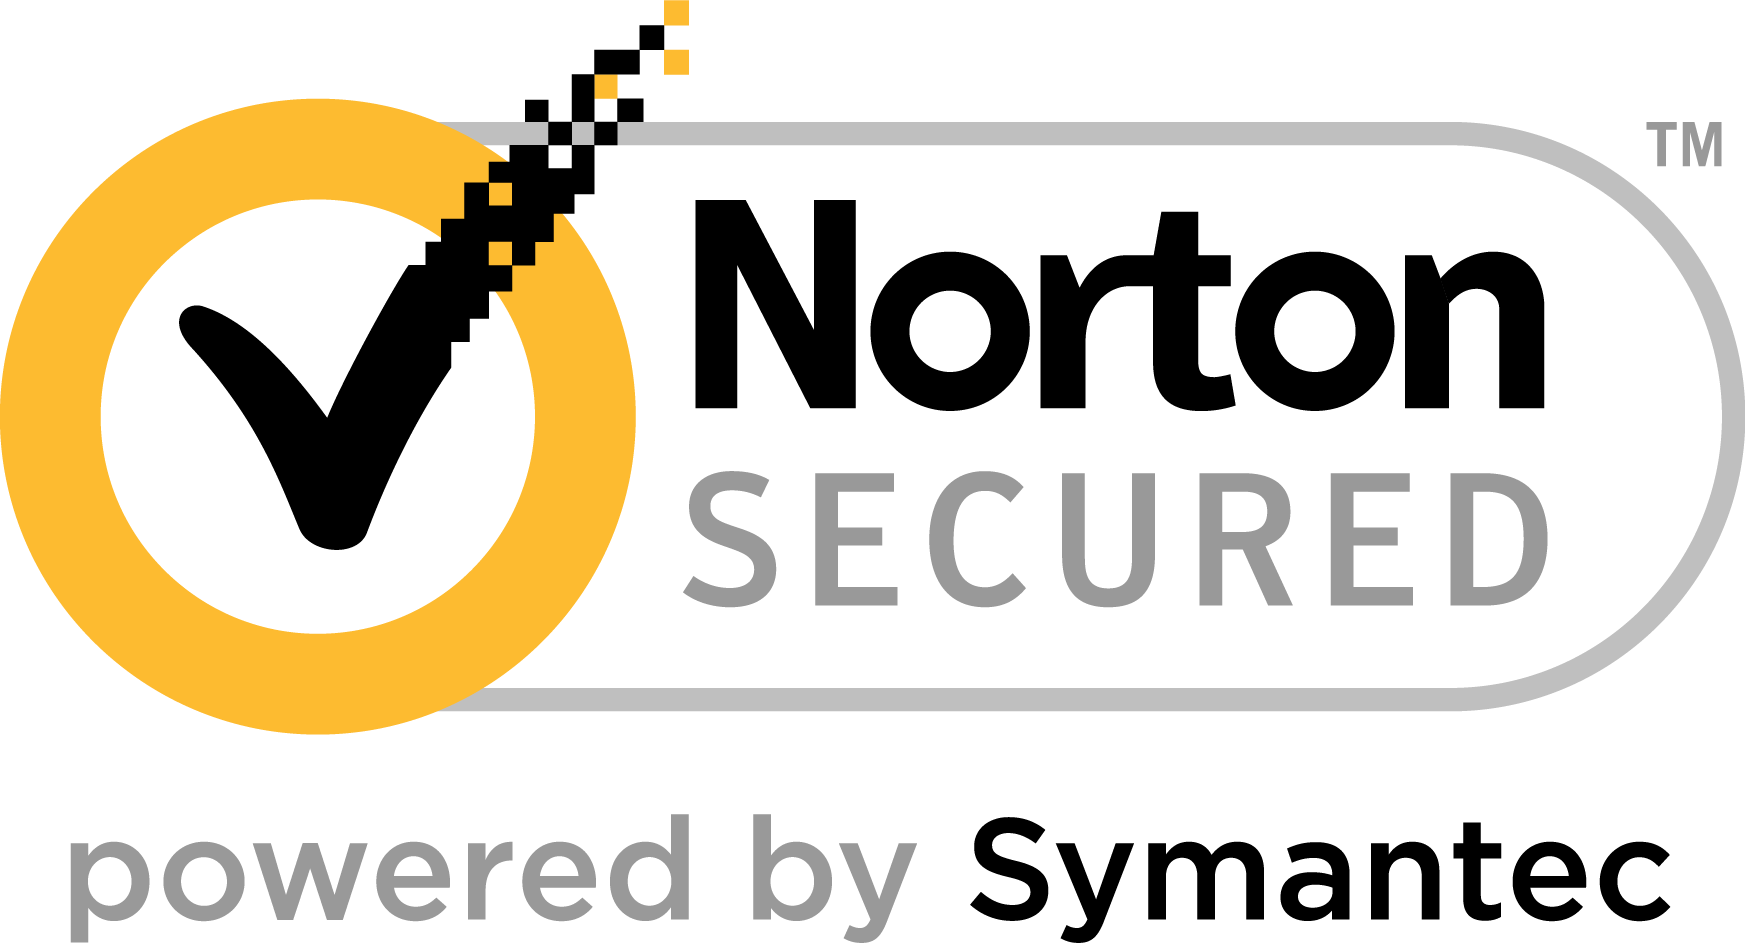 MyMathGenius is Norton Secured